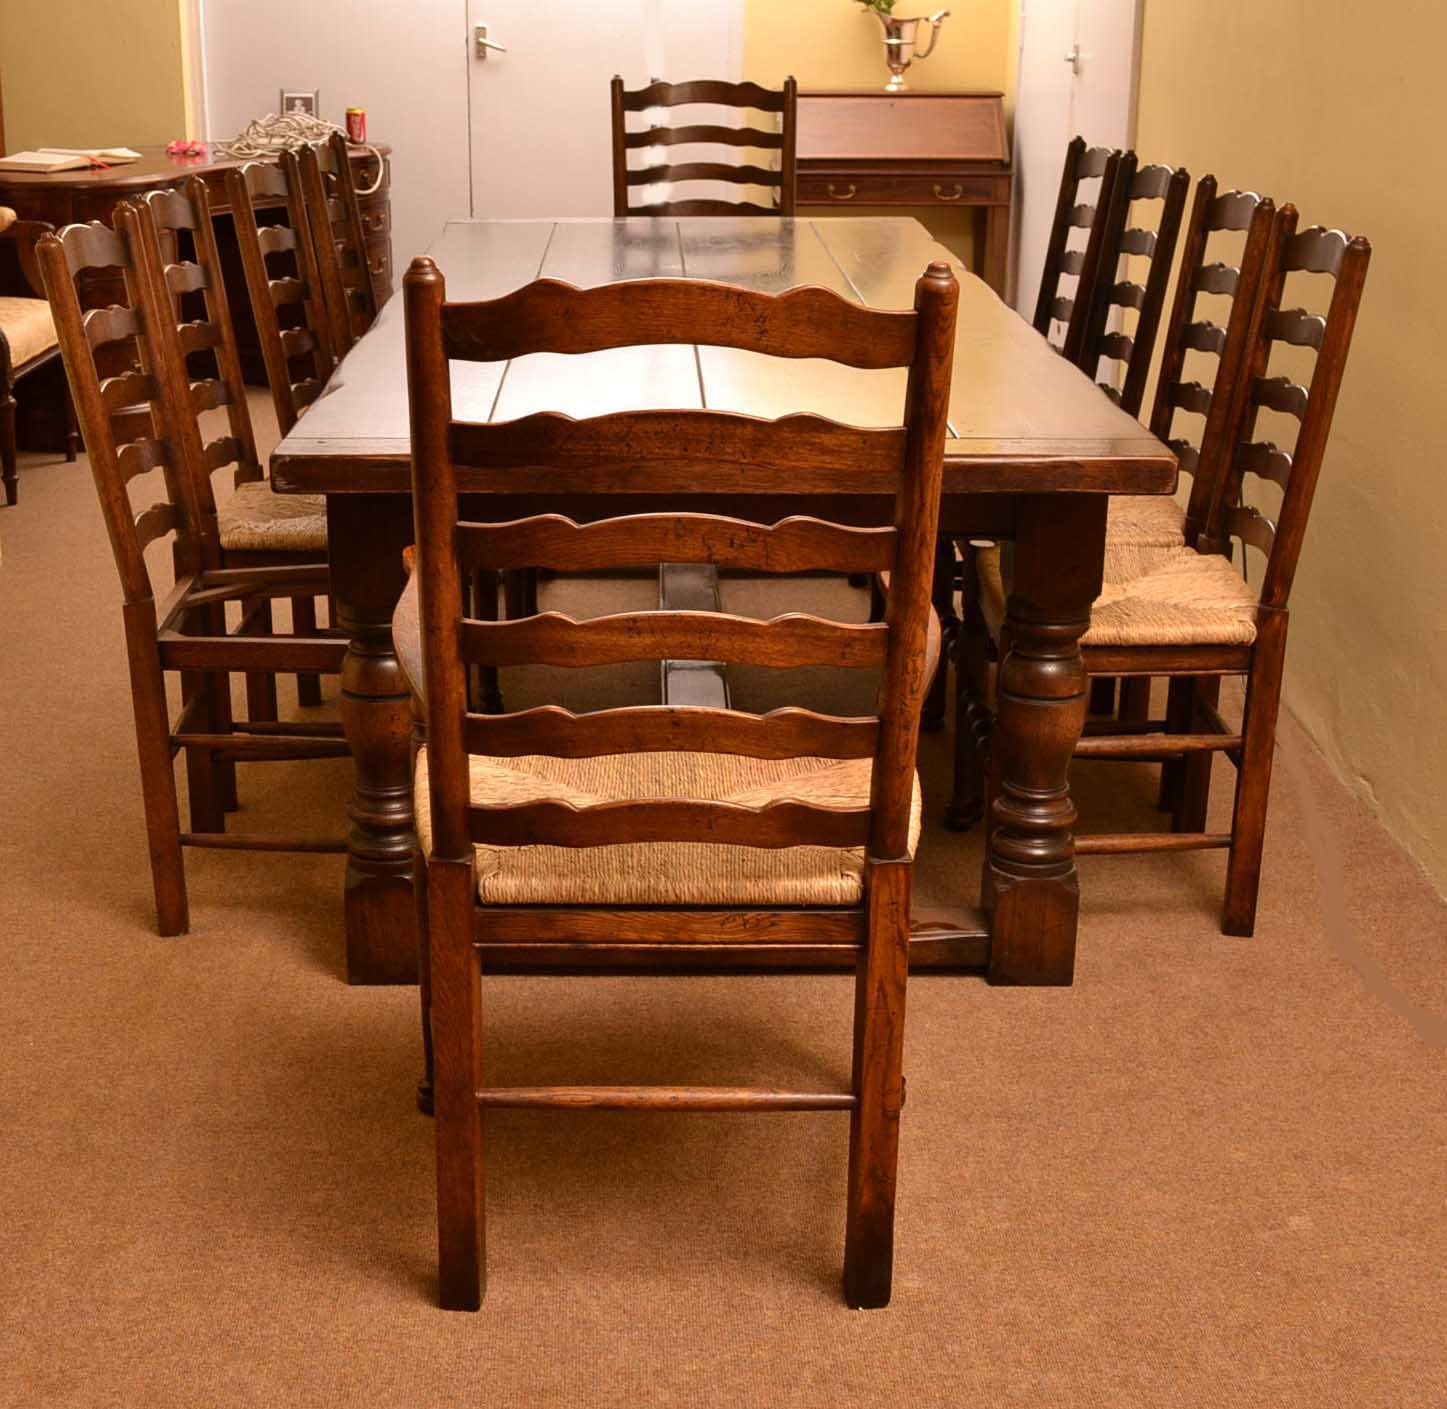 regent antiques dining tables and chairs table and chair sets bespoke solid oak refectory. Black Bedroom Furniture Sets. Home Design Ideas